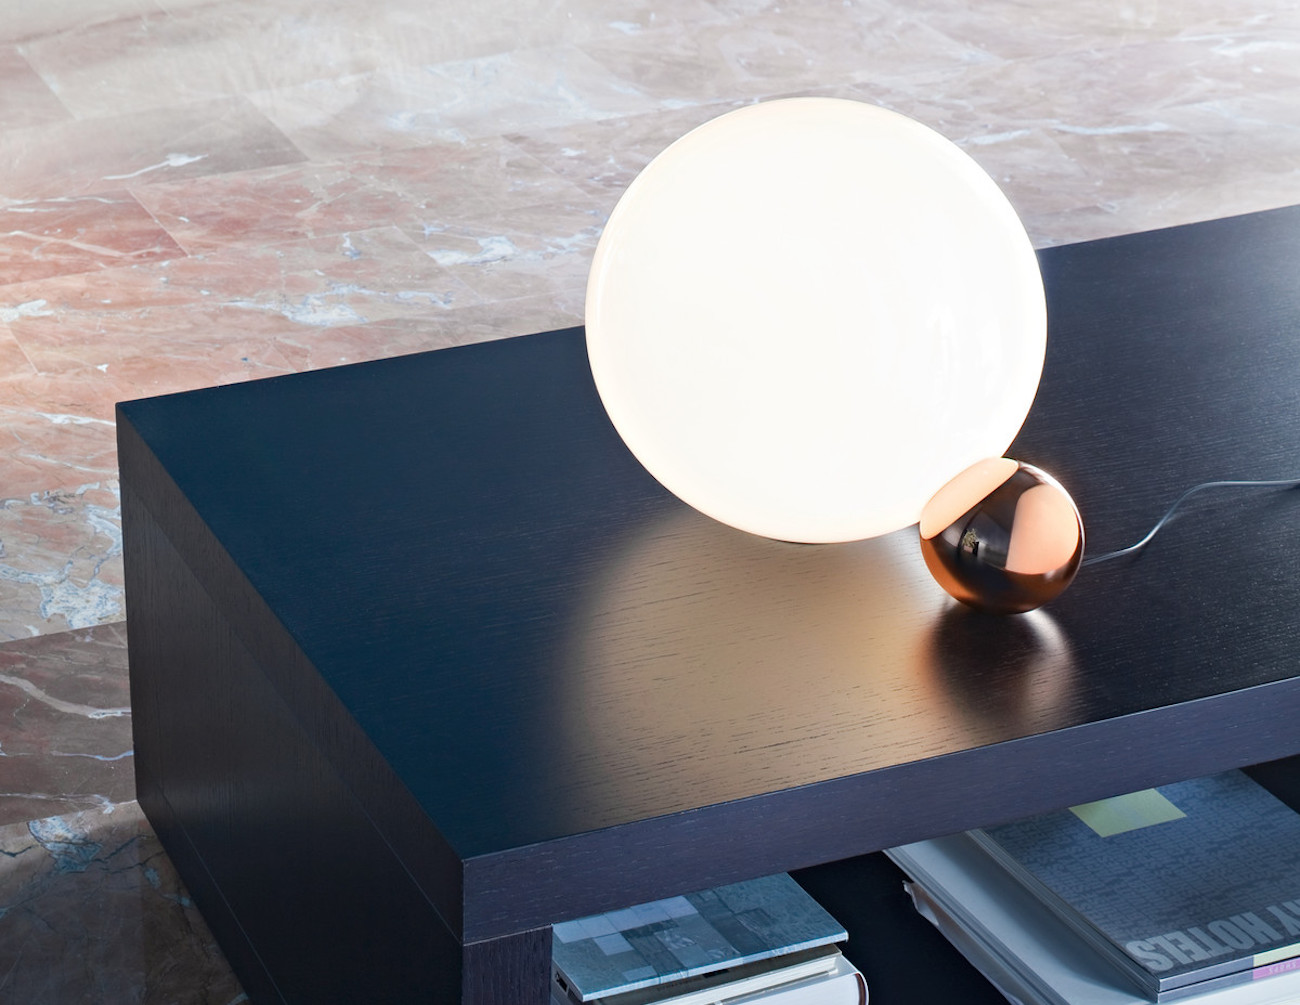 copycat-table-lamp-by-flos-02